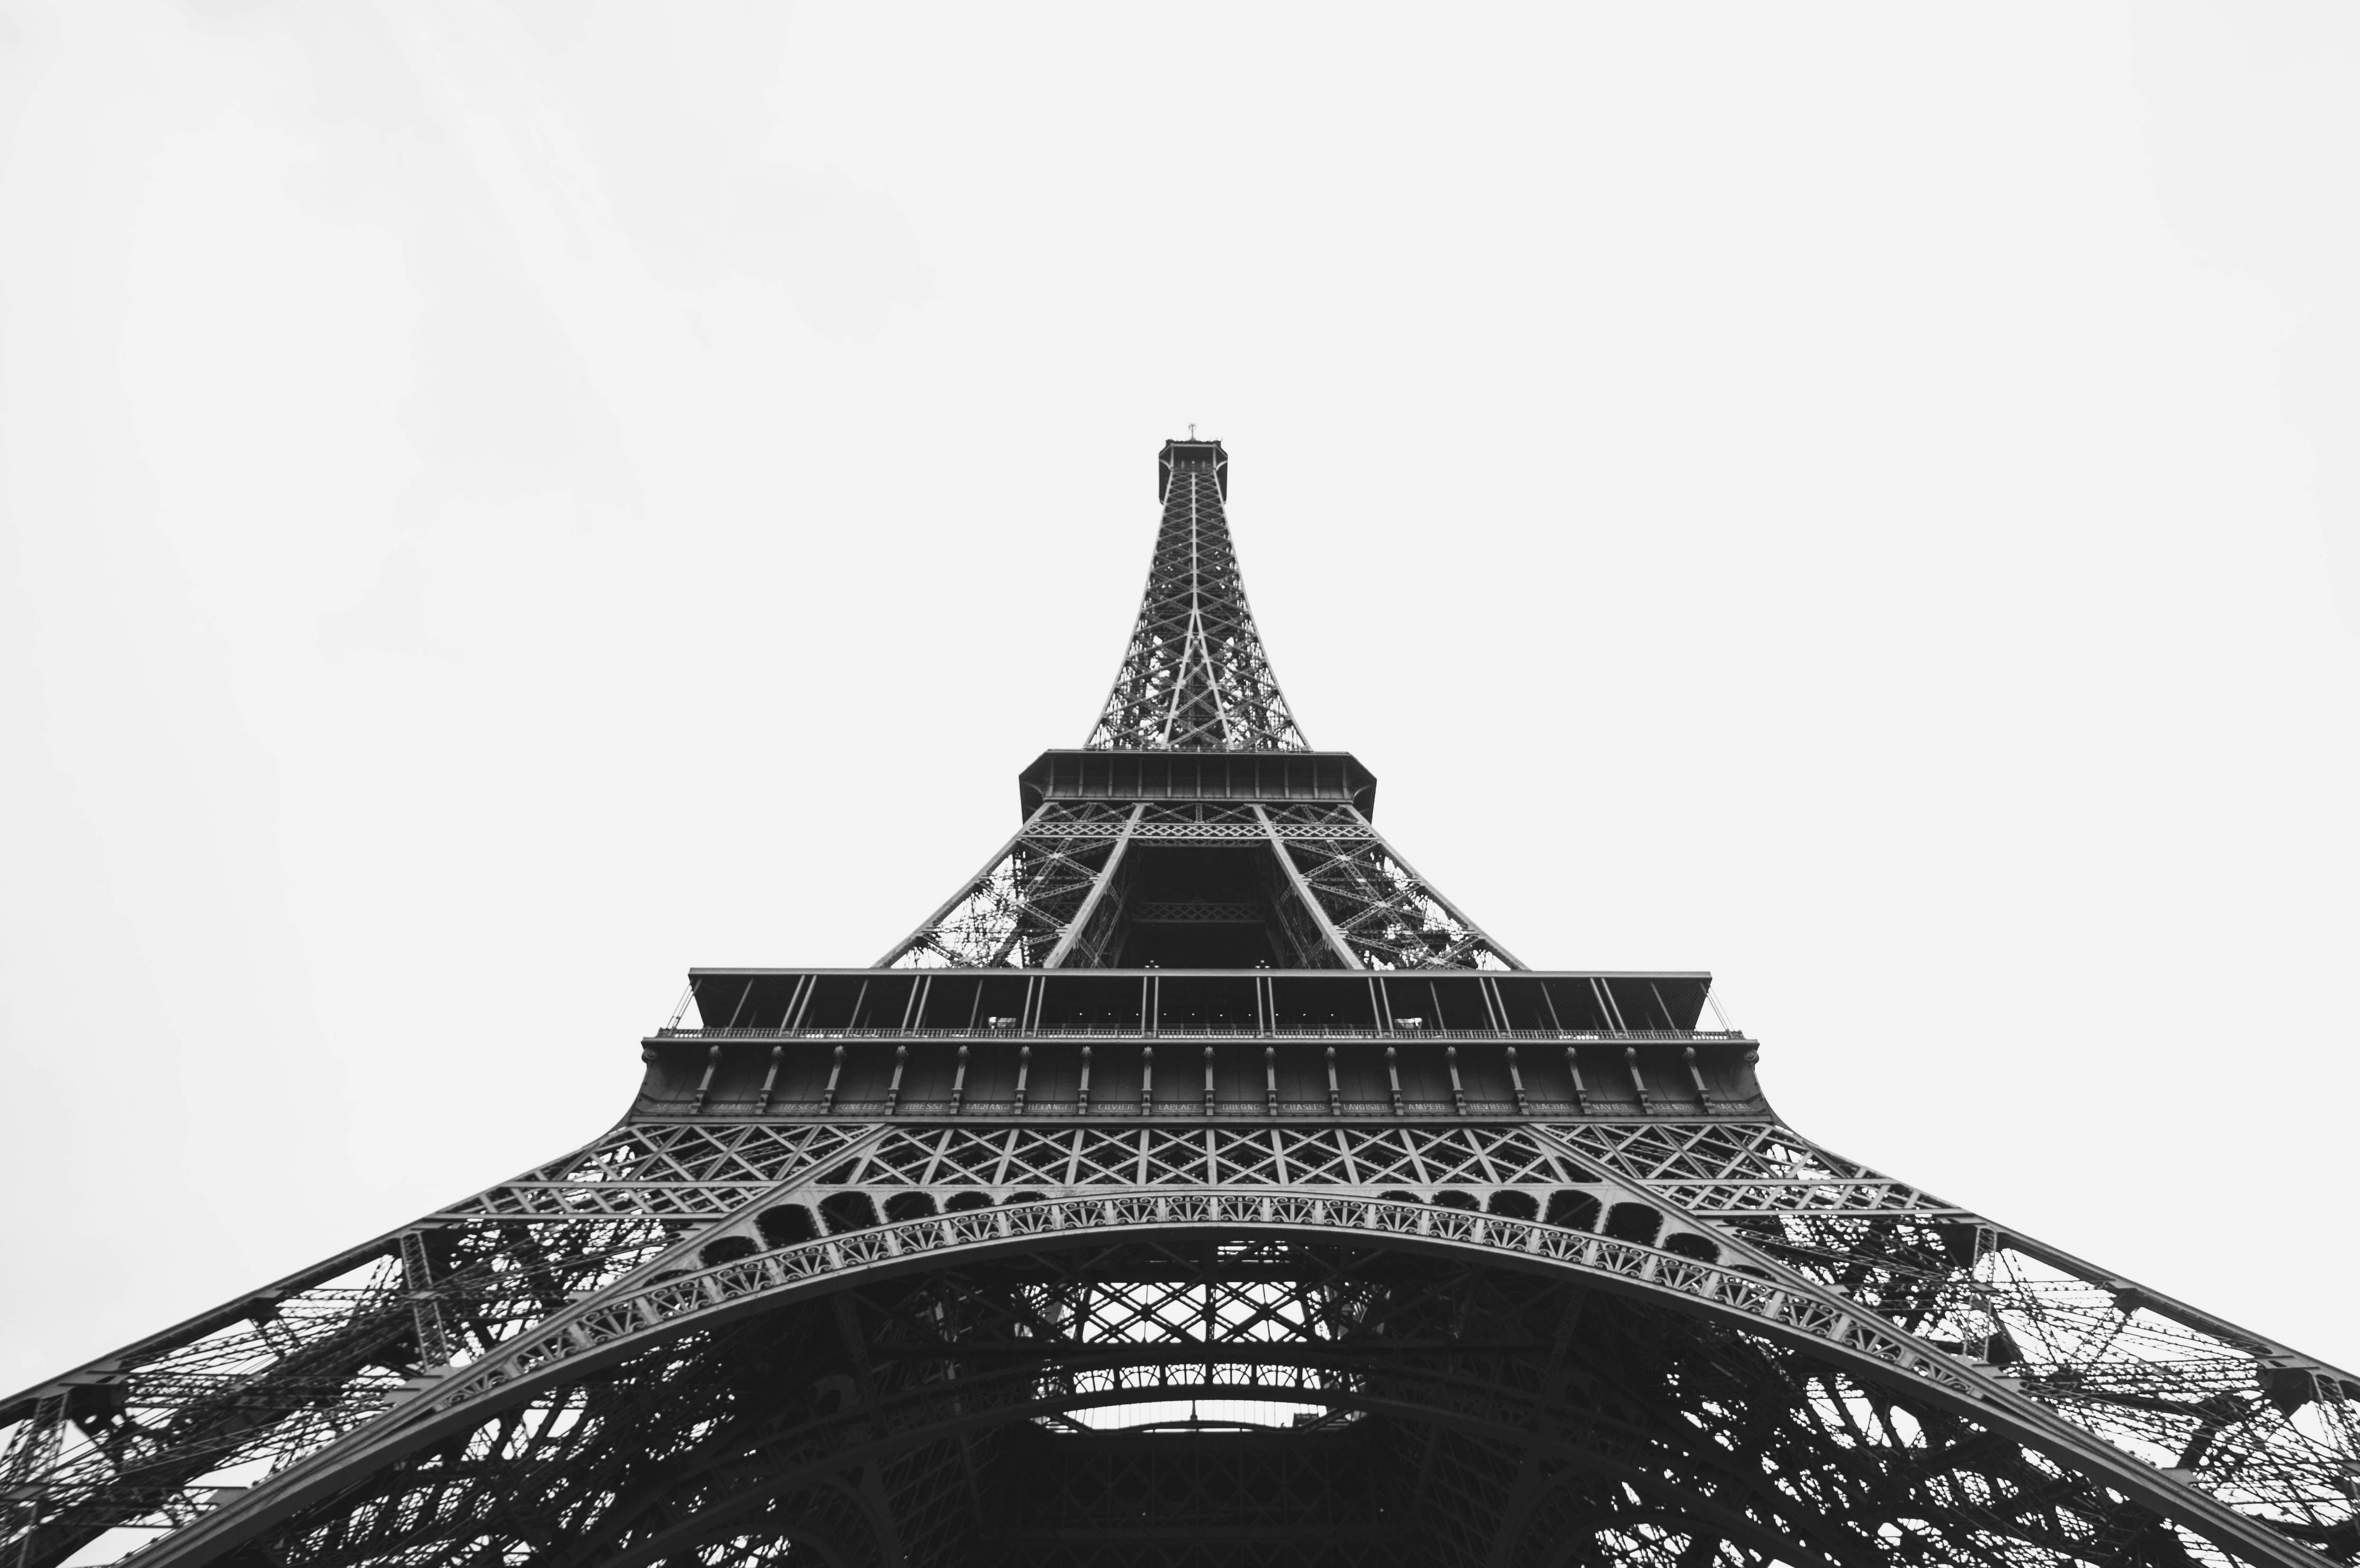 grayscale photography of Eiffel Tower in Paris